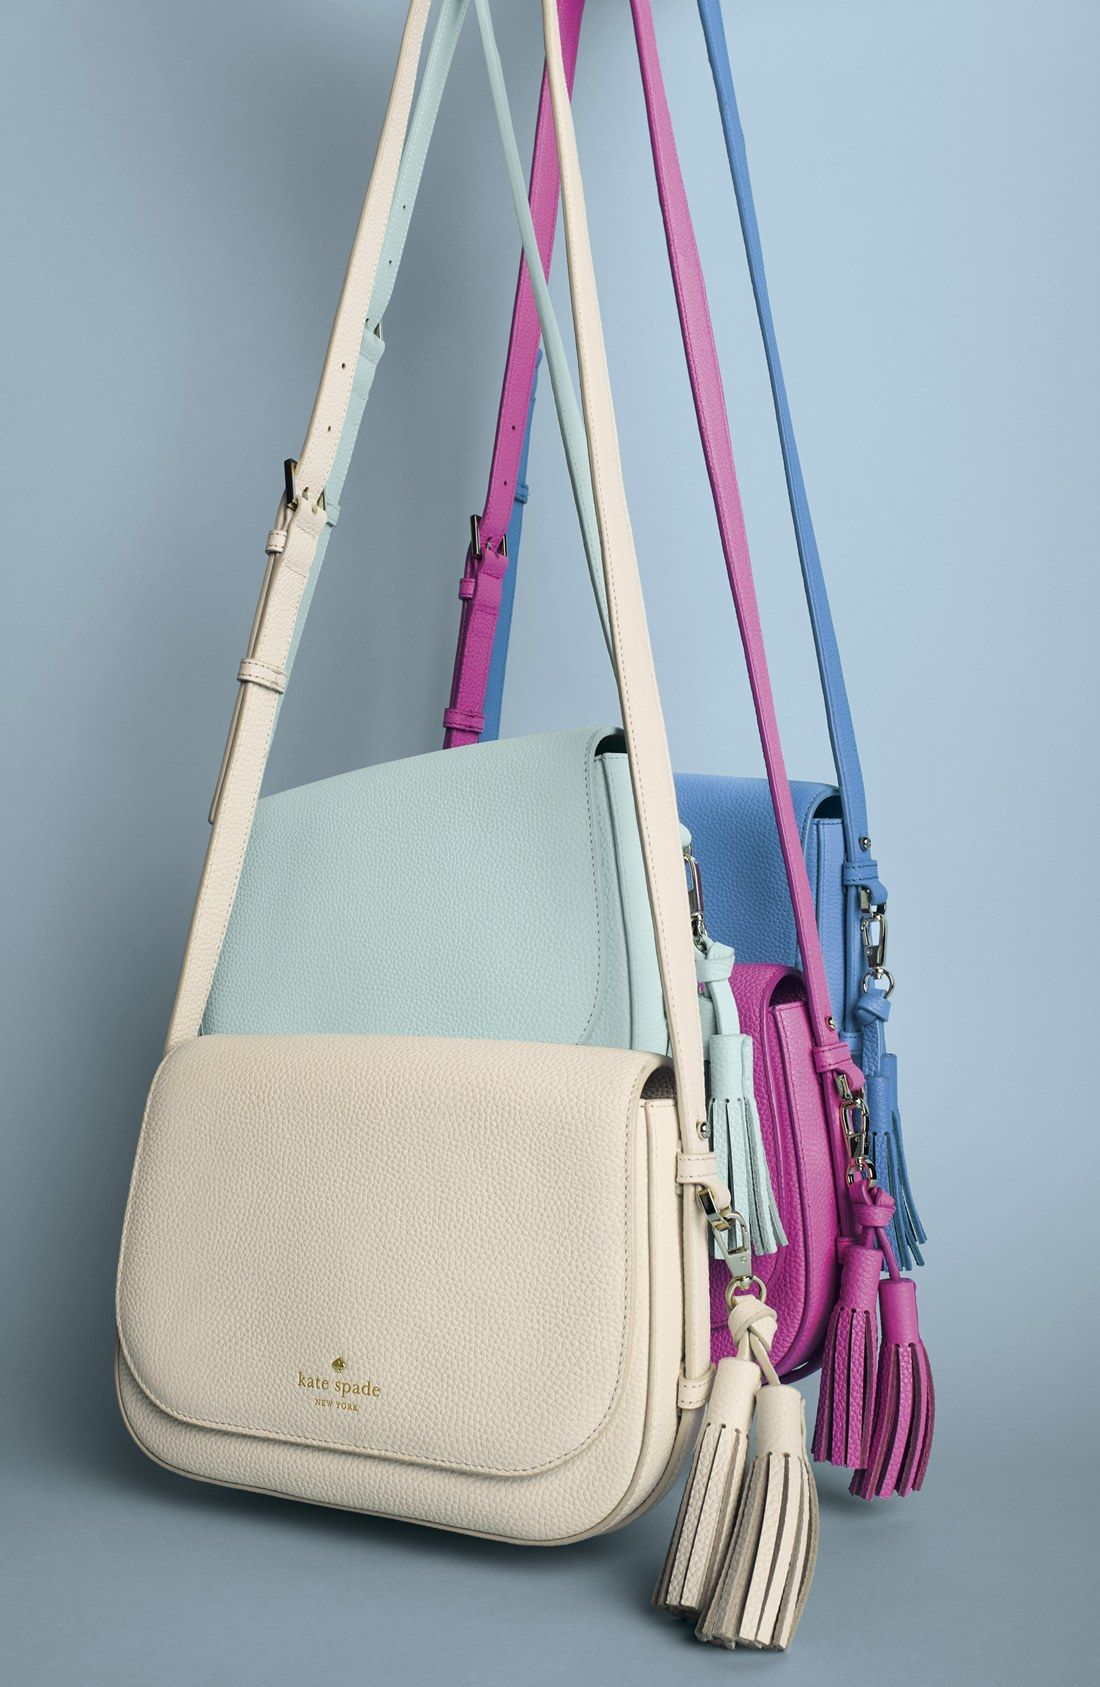 0b35b1a5e In love with this compact crossbody by Kate Spade that comes in a variety  of essential spring colors.